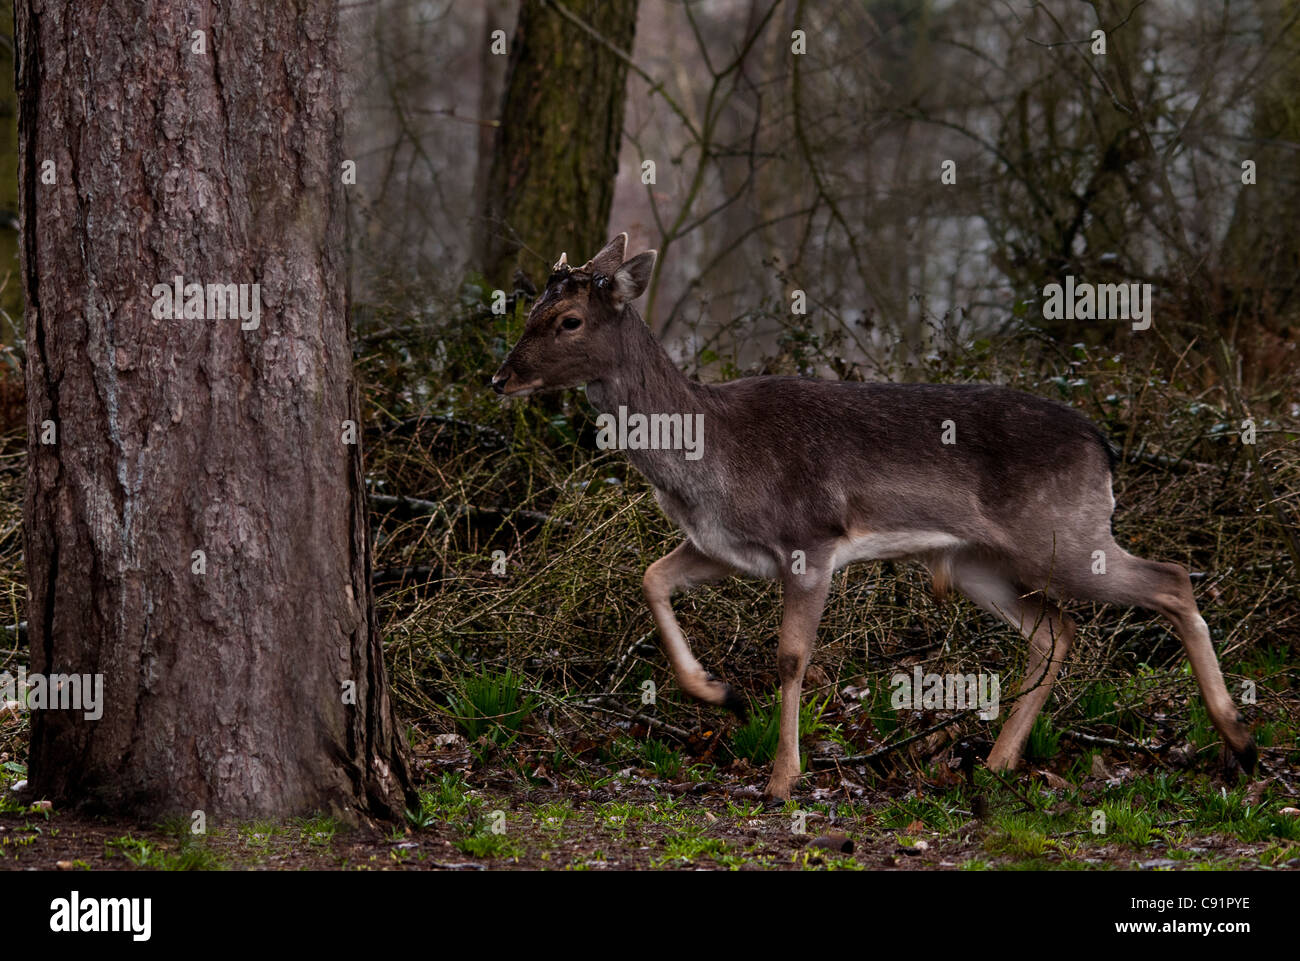 Roe Deer Stag in a woodland clearing, a small deer not often seen as they are very wary of humans. Stock Photo